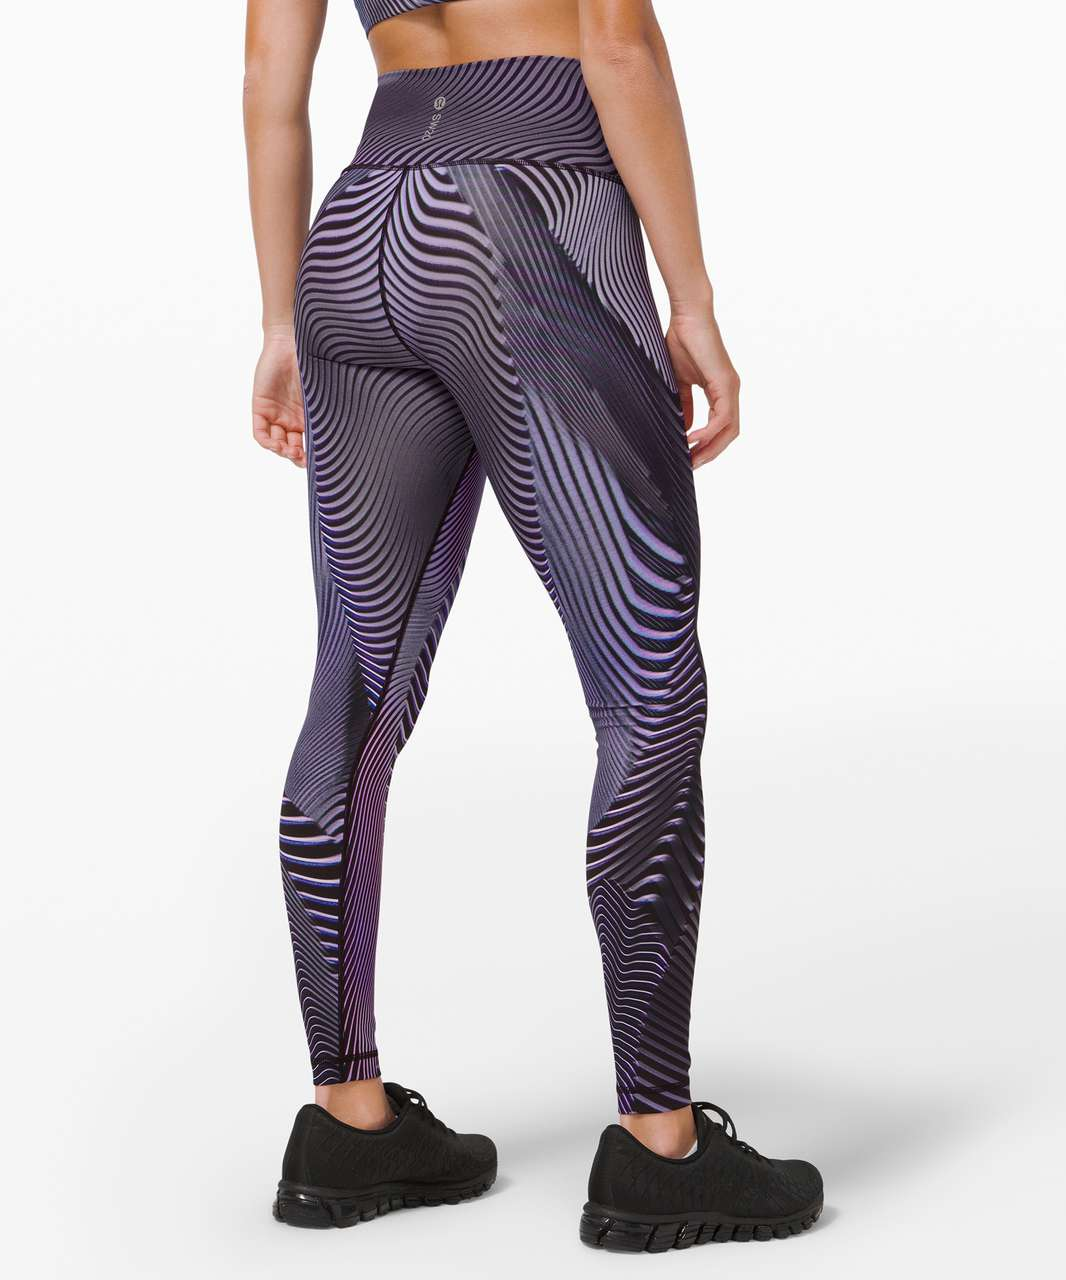 "Lululemon Wunder Under High-Rise Tight 25"" *SeaWheeze - Fast Lane Purple Multi"